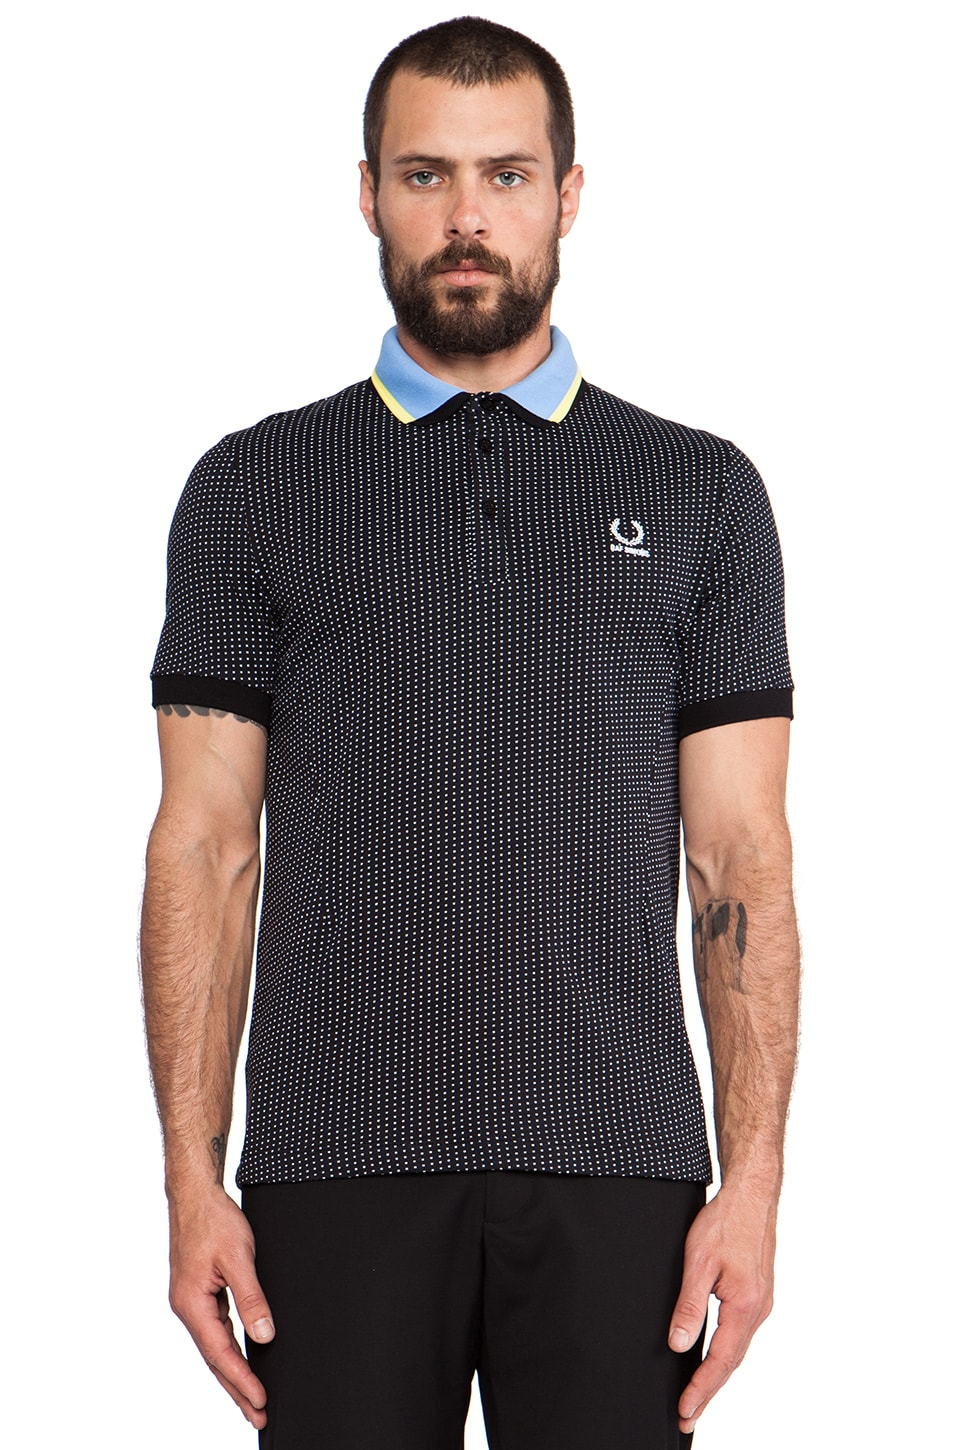 Fred Perry x Raf Simons Jacquard Square Fred Perry Shirt in Black